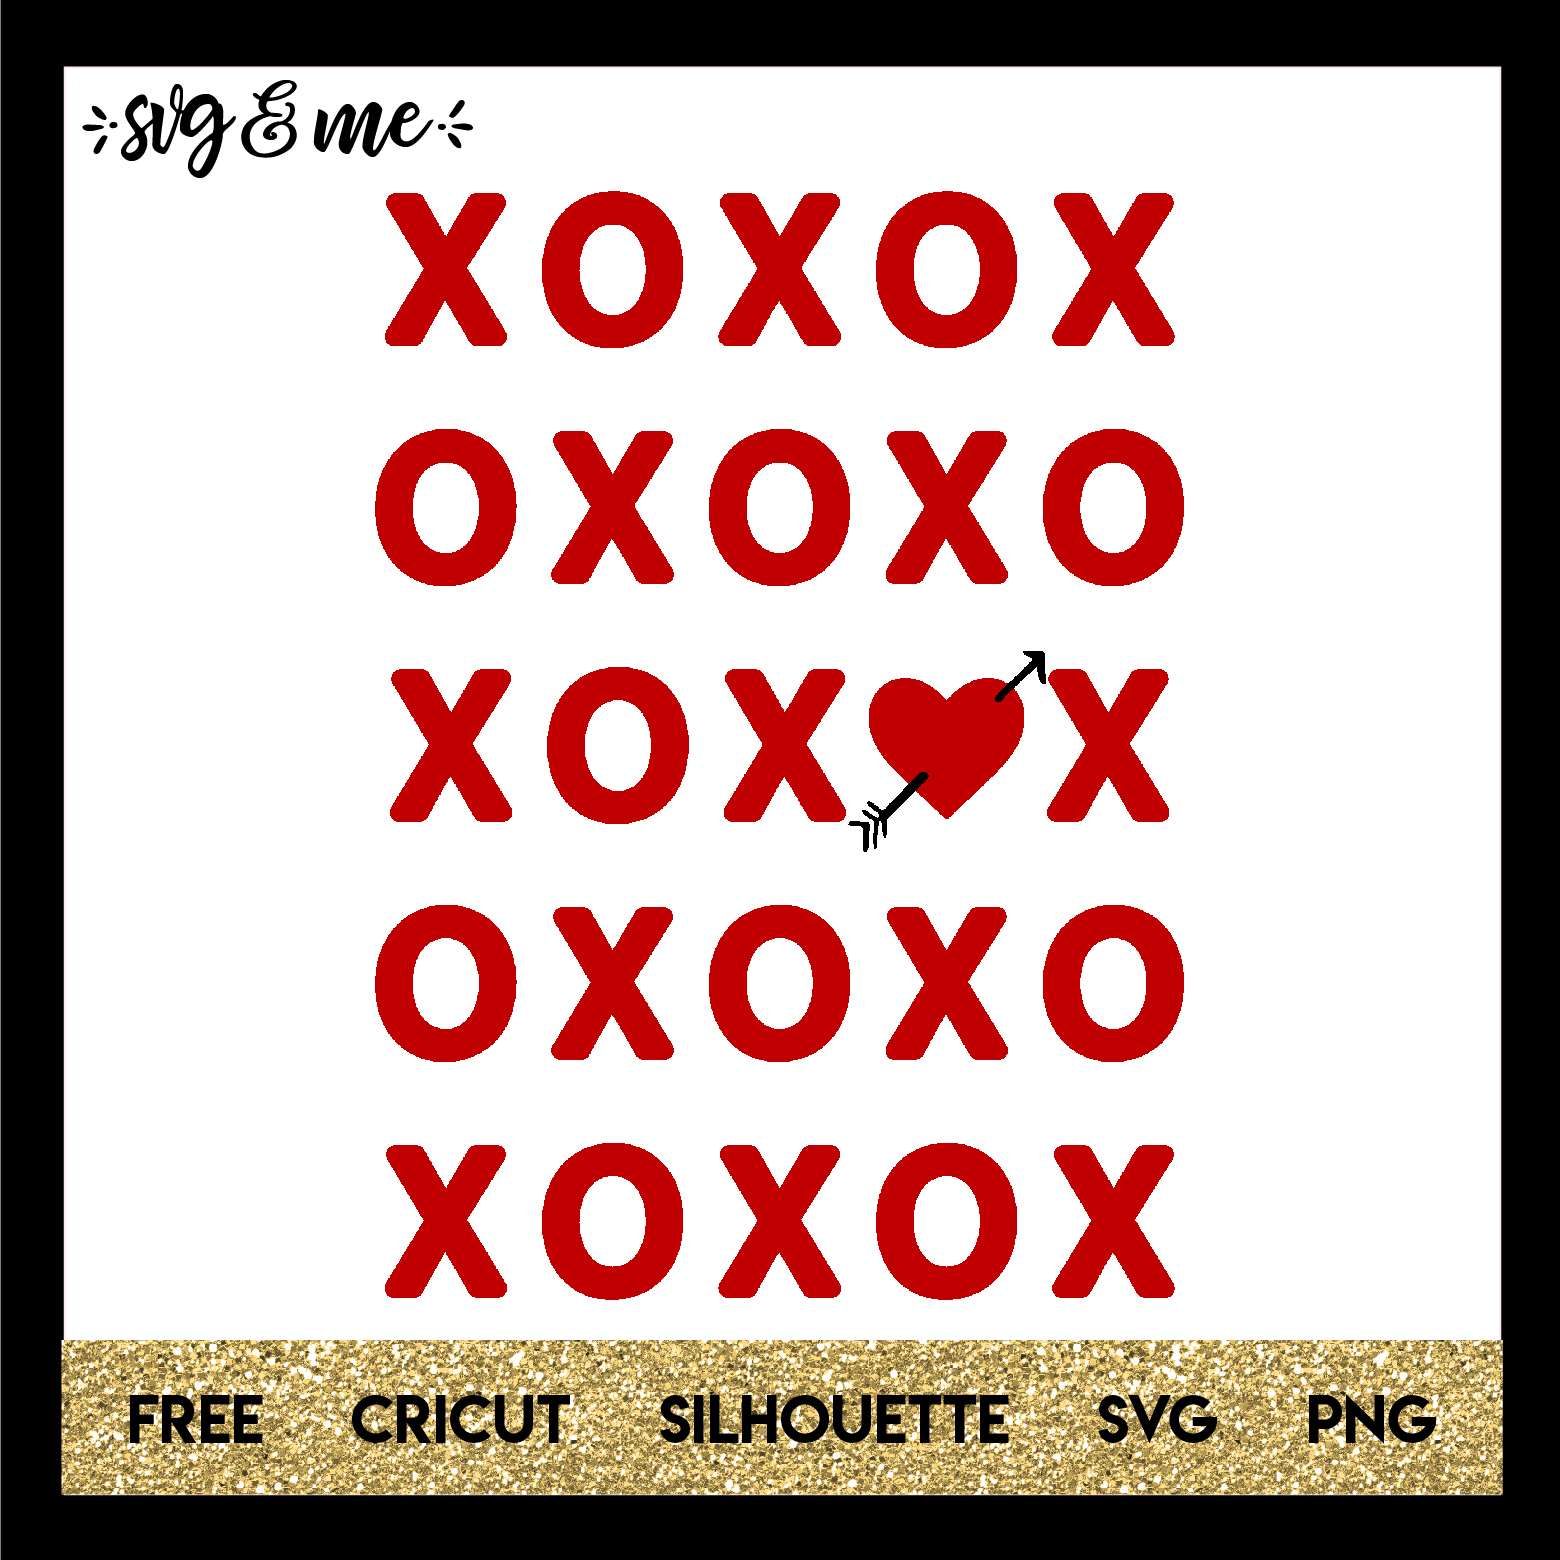 FREE SVG CUT FILE for Cricut, Silhouette and more - XO Valentine's Day Free Printable